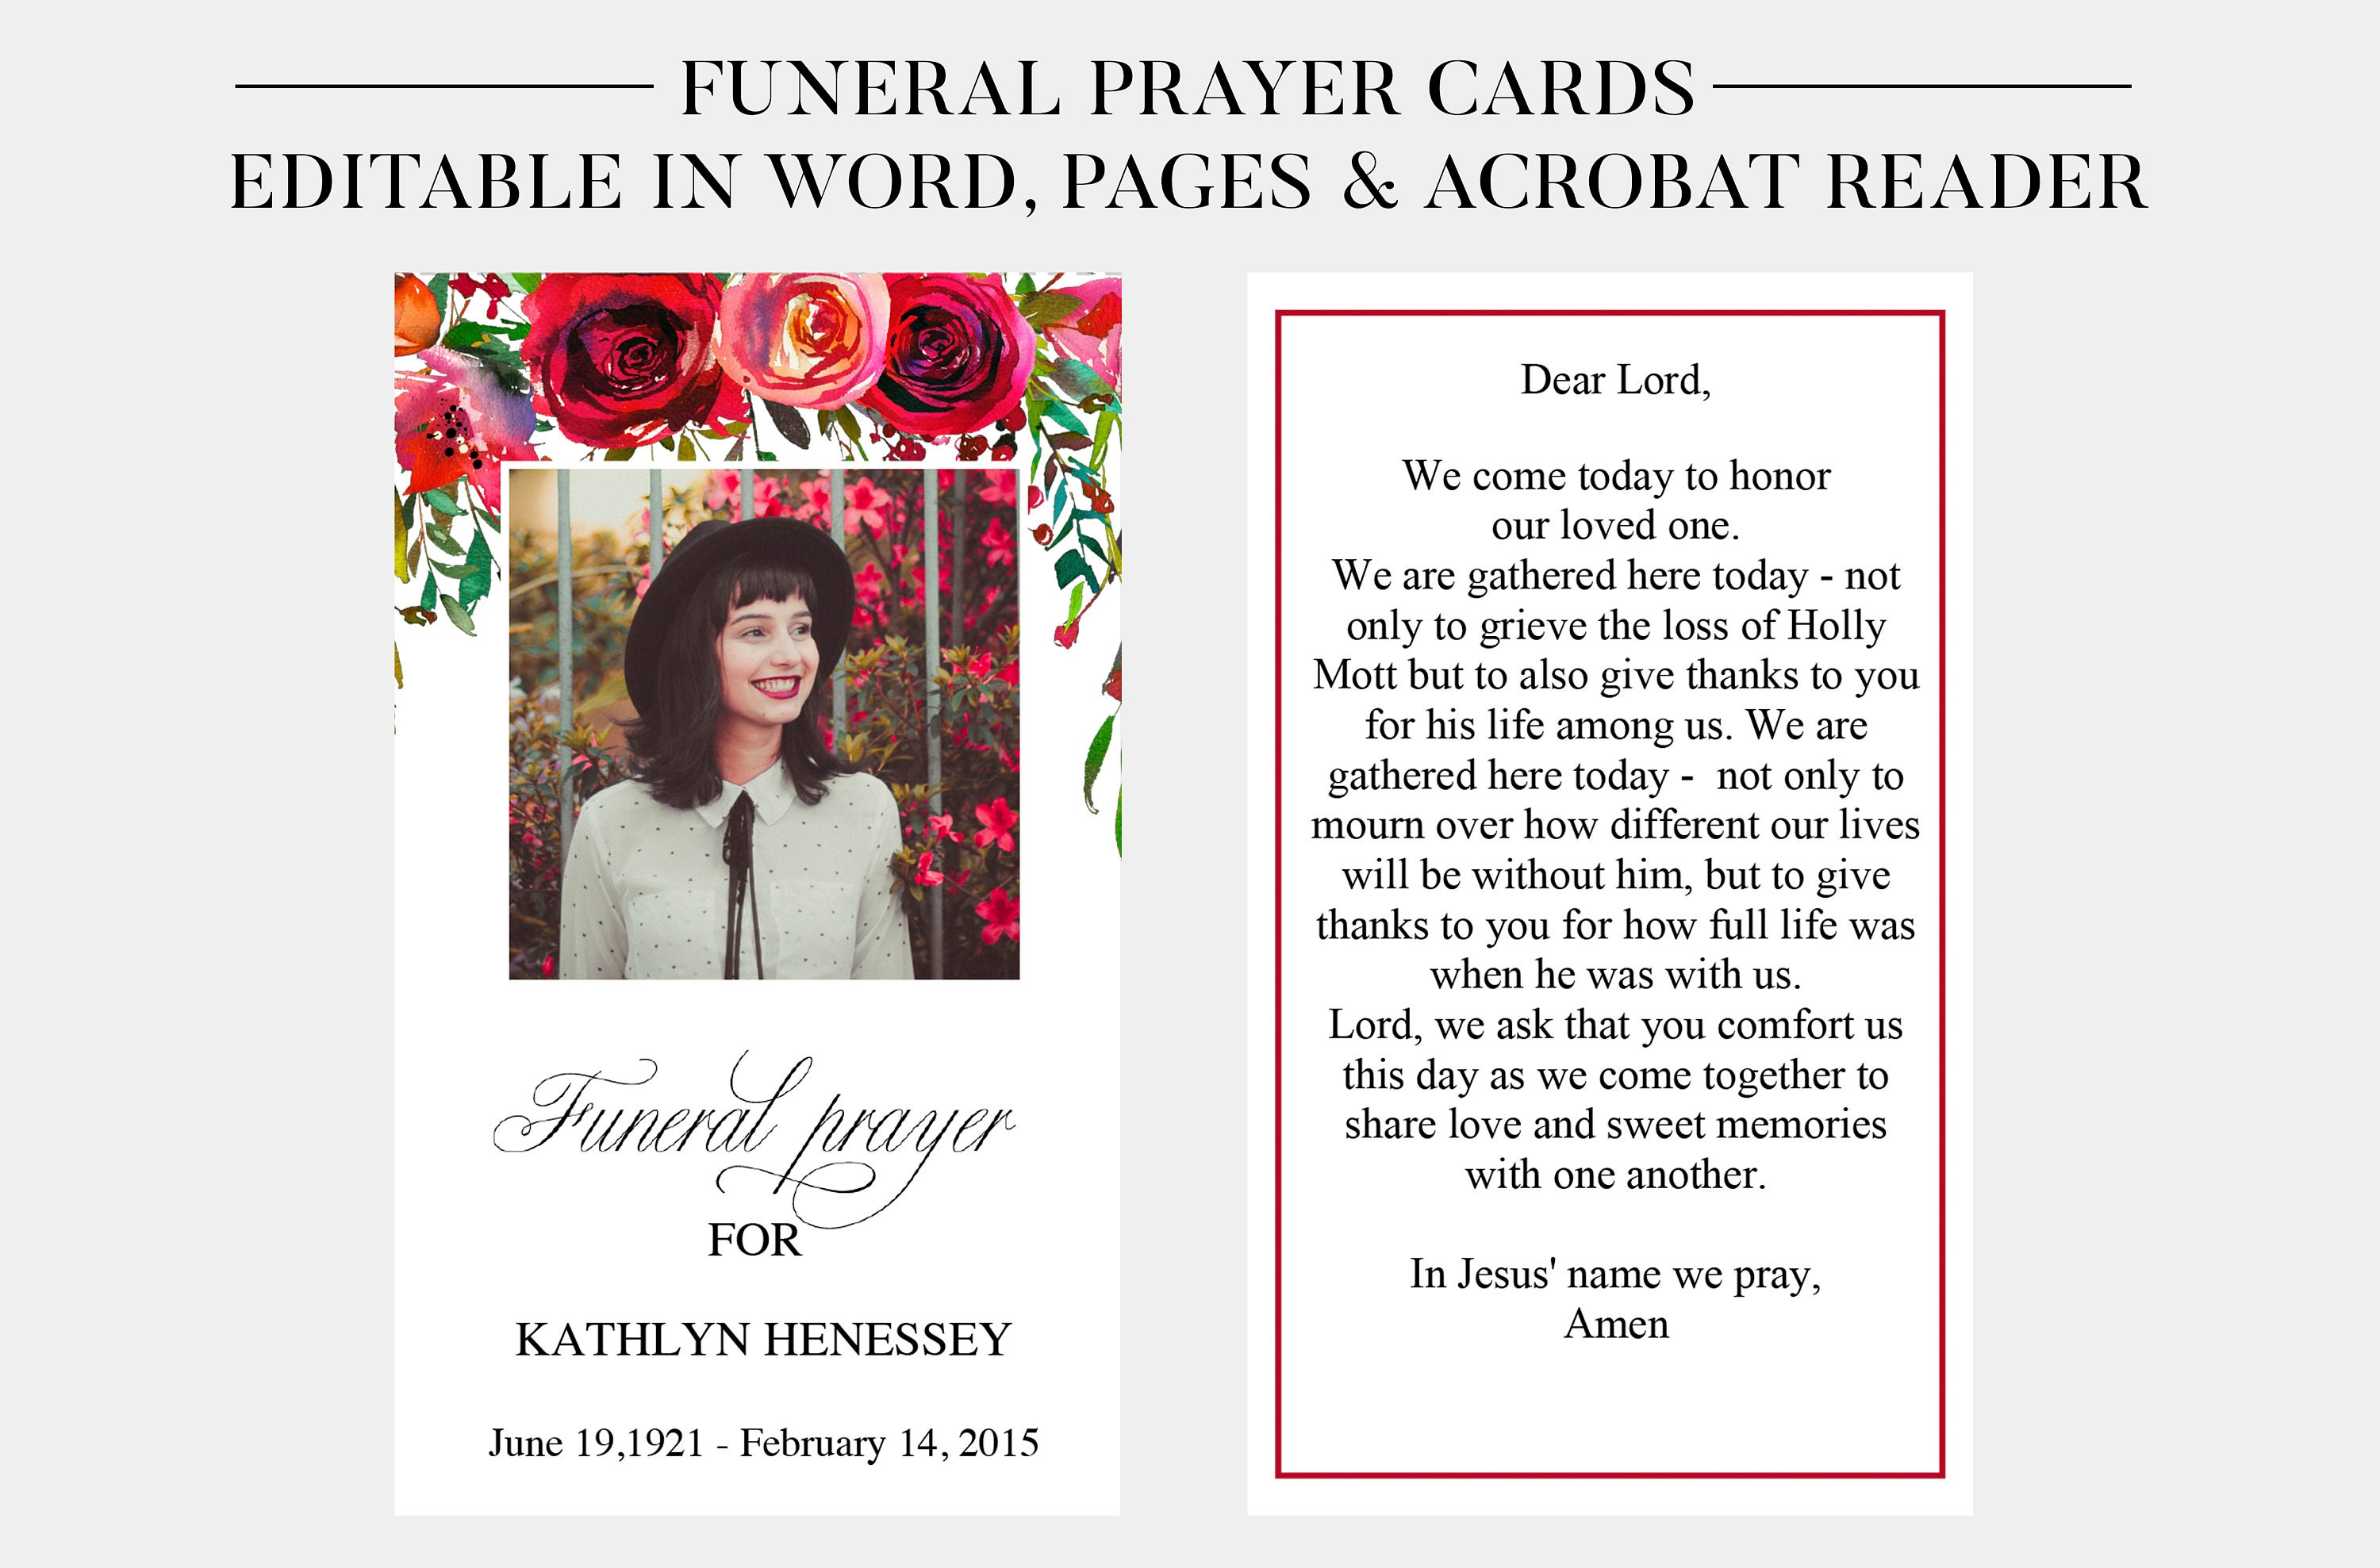 Funeral Prayer Cards  Printable Funeral Cards  Memorial Cards  Funeral  Religious Cards  Memorial Prayer Card Template  Word Pages PDF Regarding Memorial Card Template Word